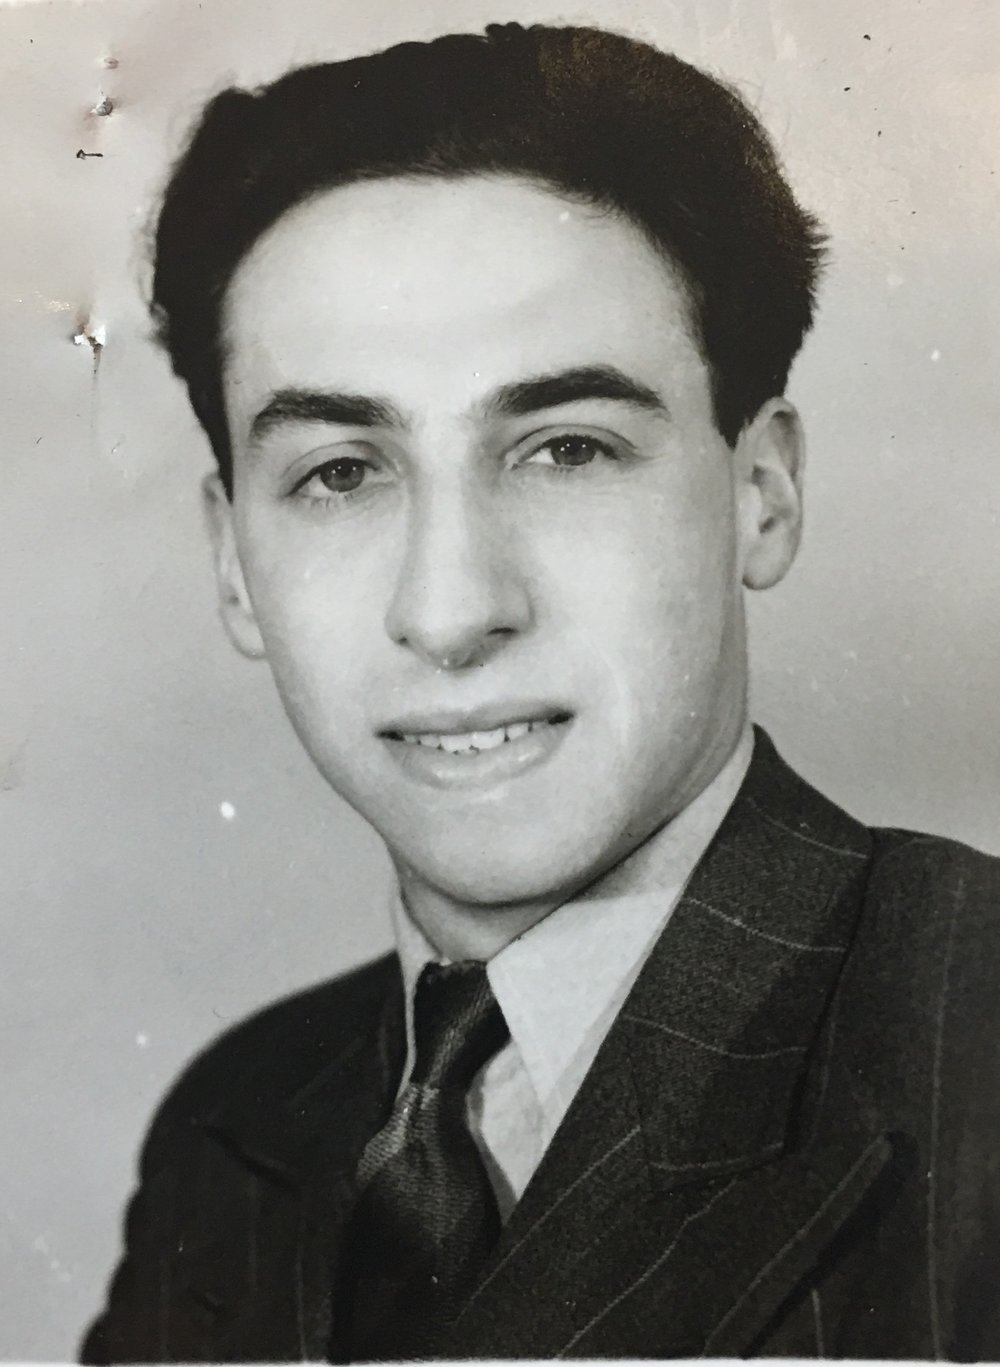 Manny Silver who ran the Ascot hostel was just twenty-two years old. Photo: Weiner Library.